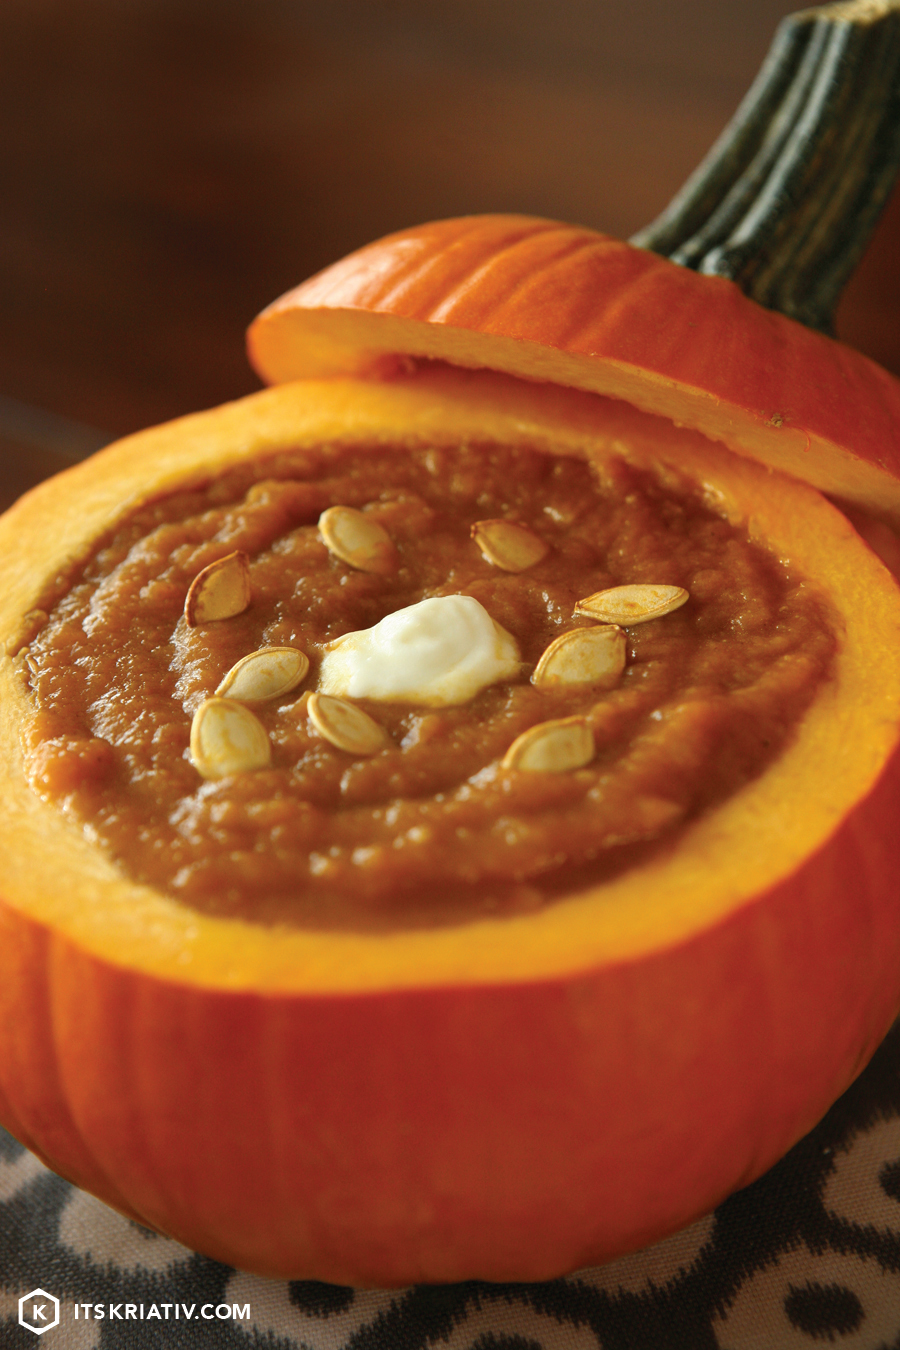 13_Nov_Food-Pumpkin-Soup-01a-04.jpg